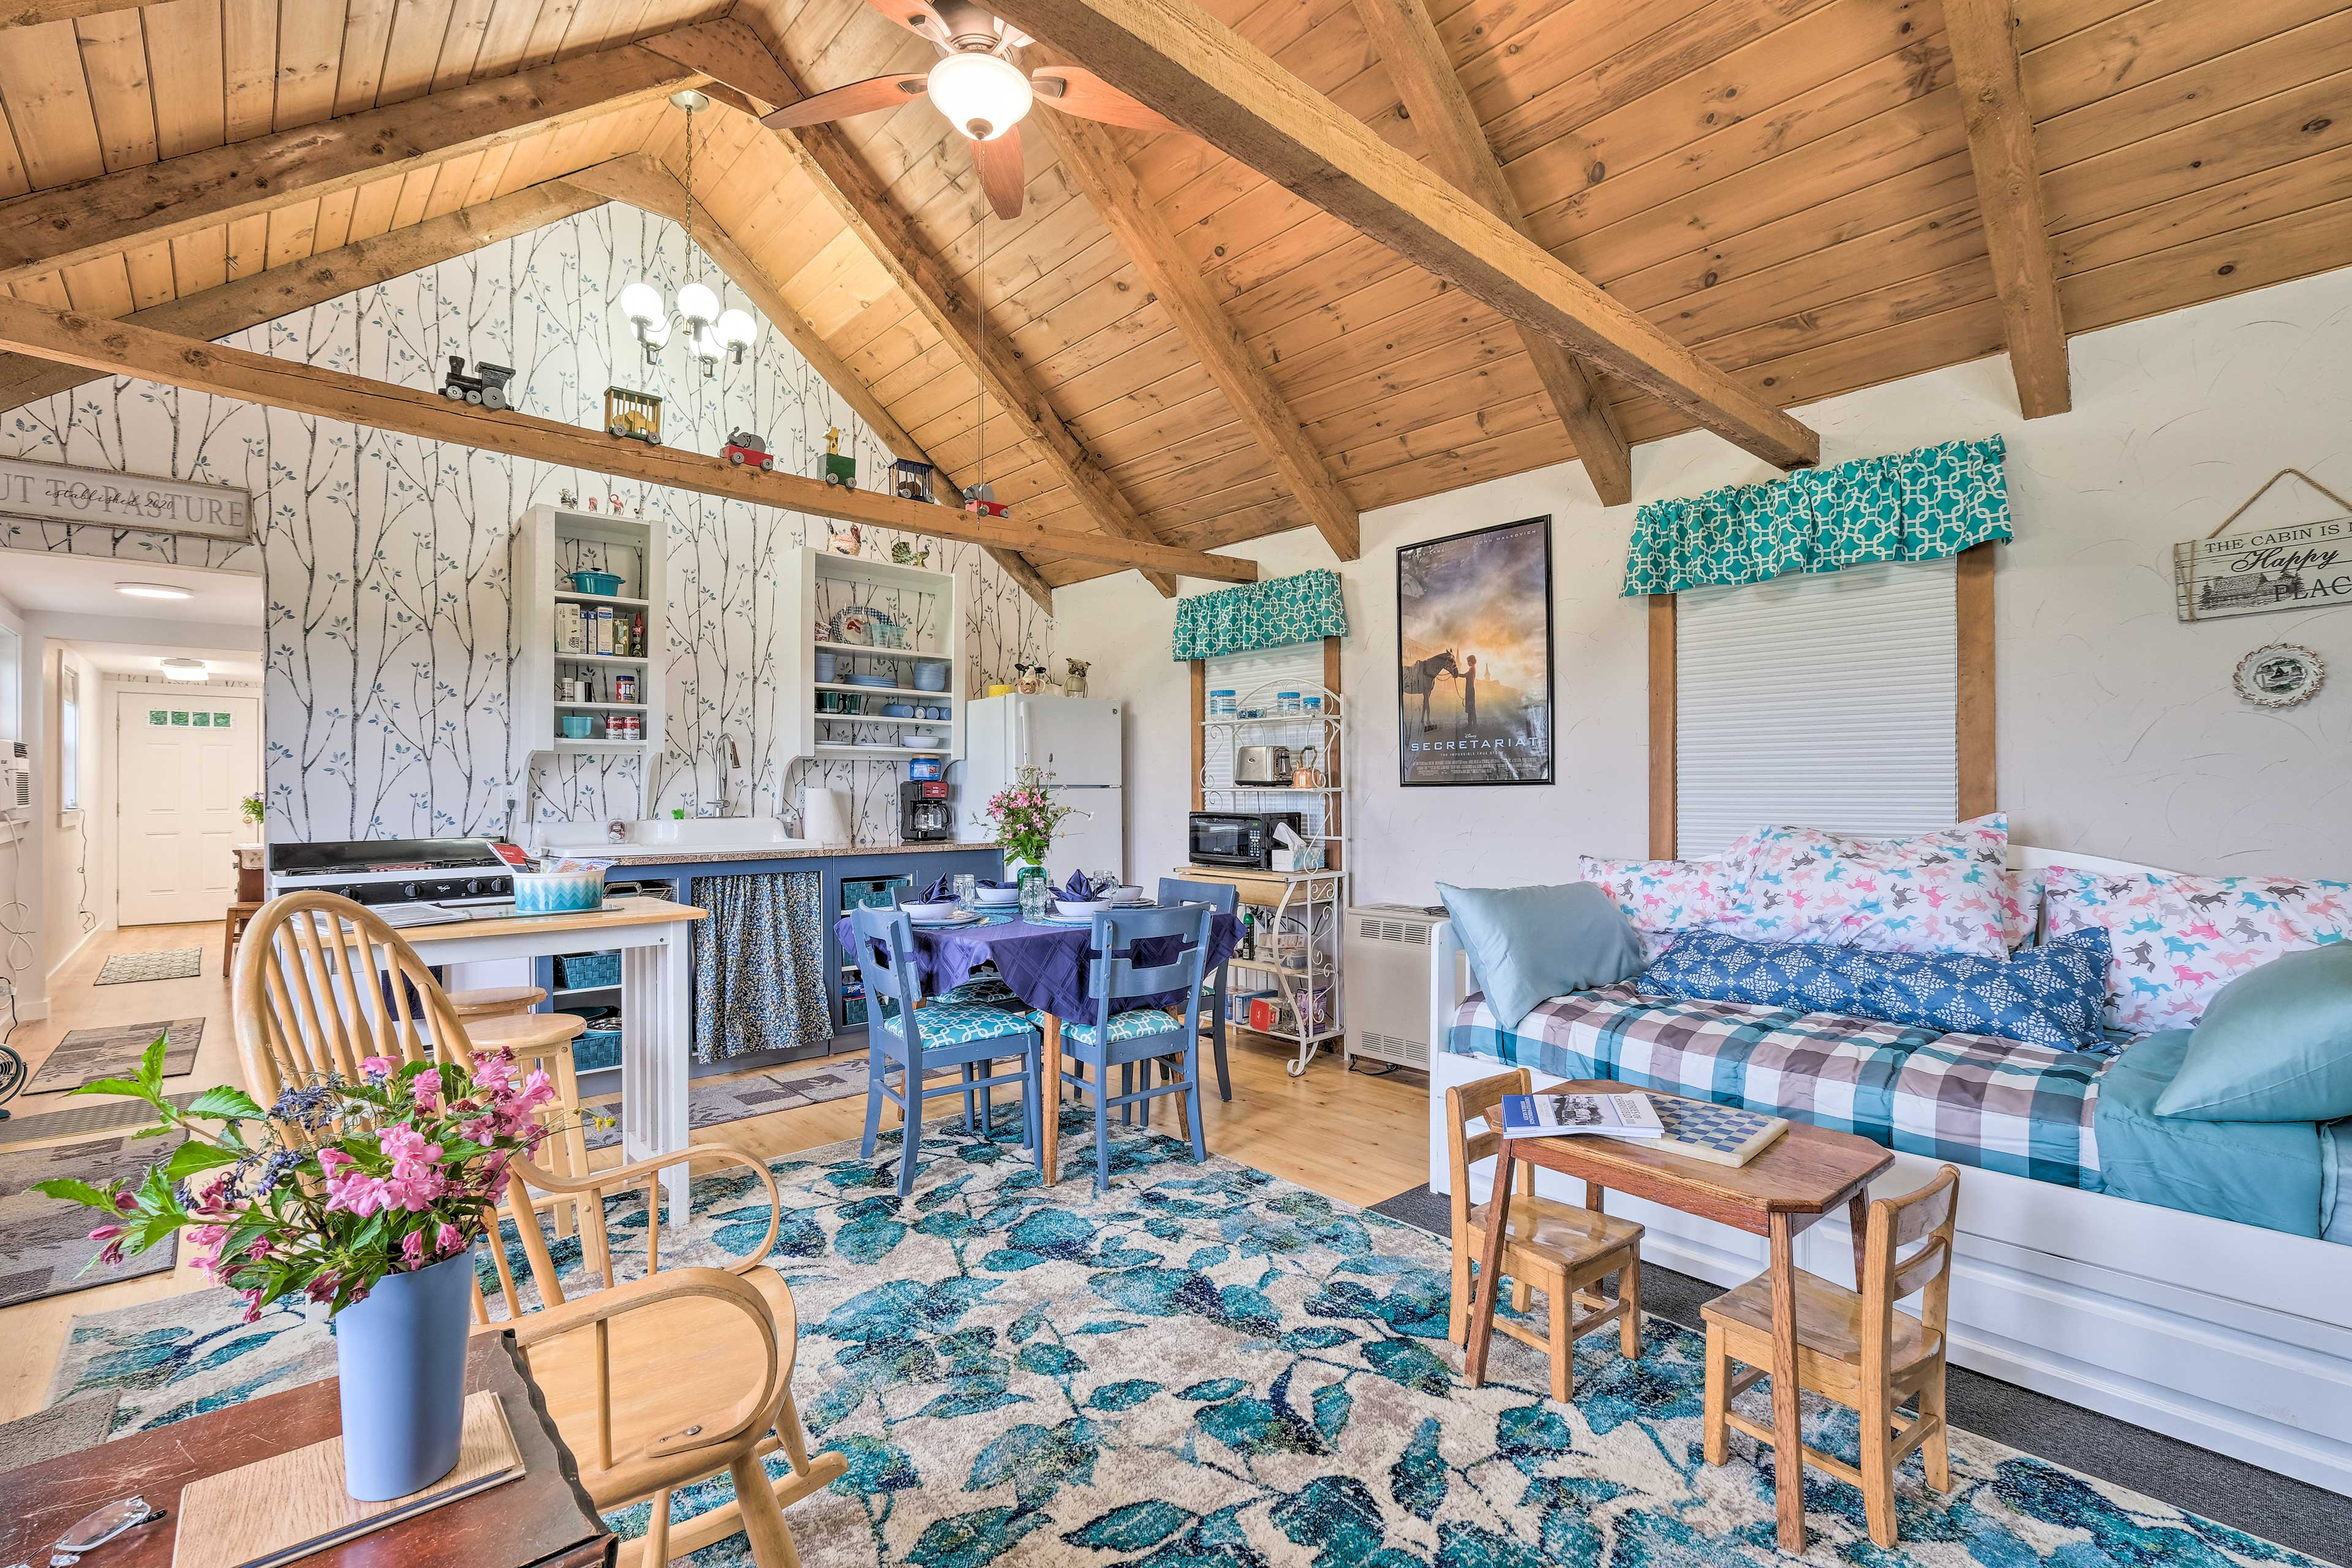 Cottage Interior | Air Conditioning/Heating | Step-Free Access